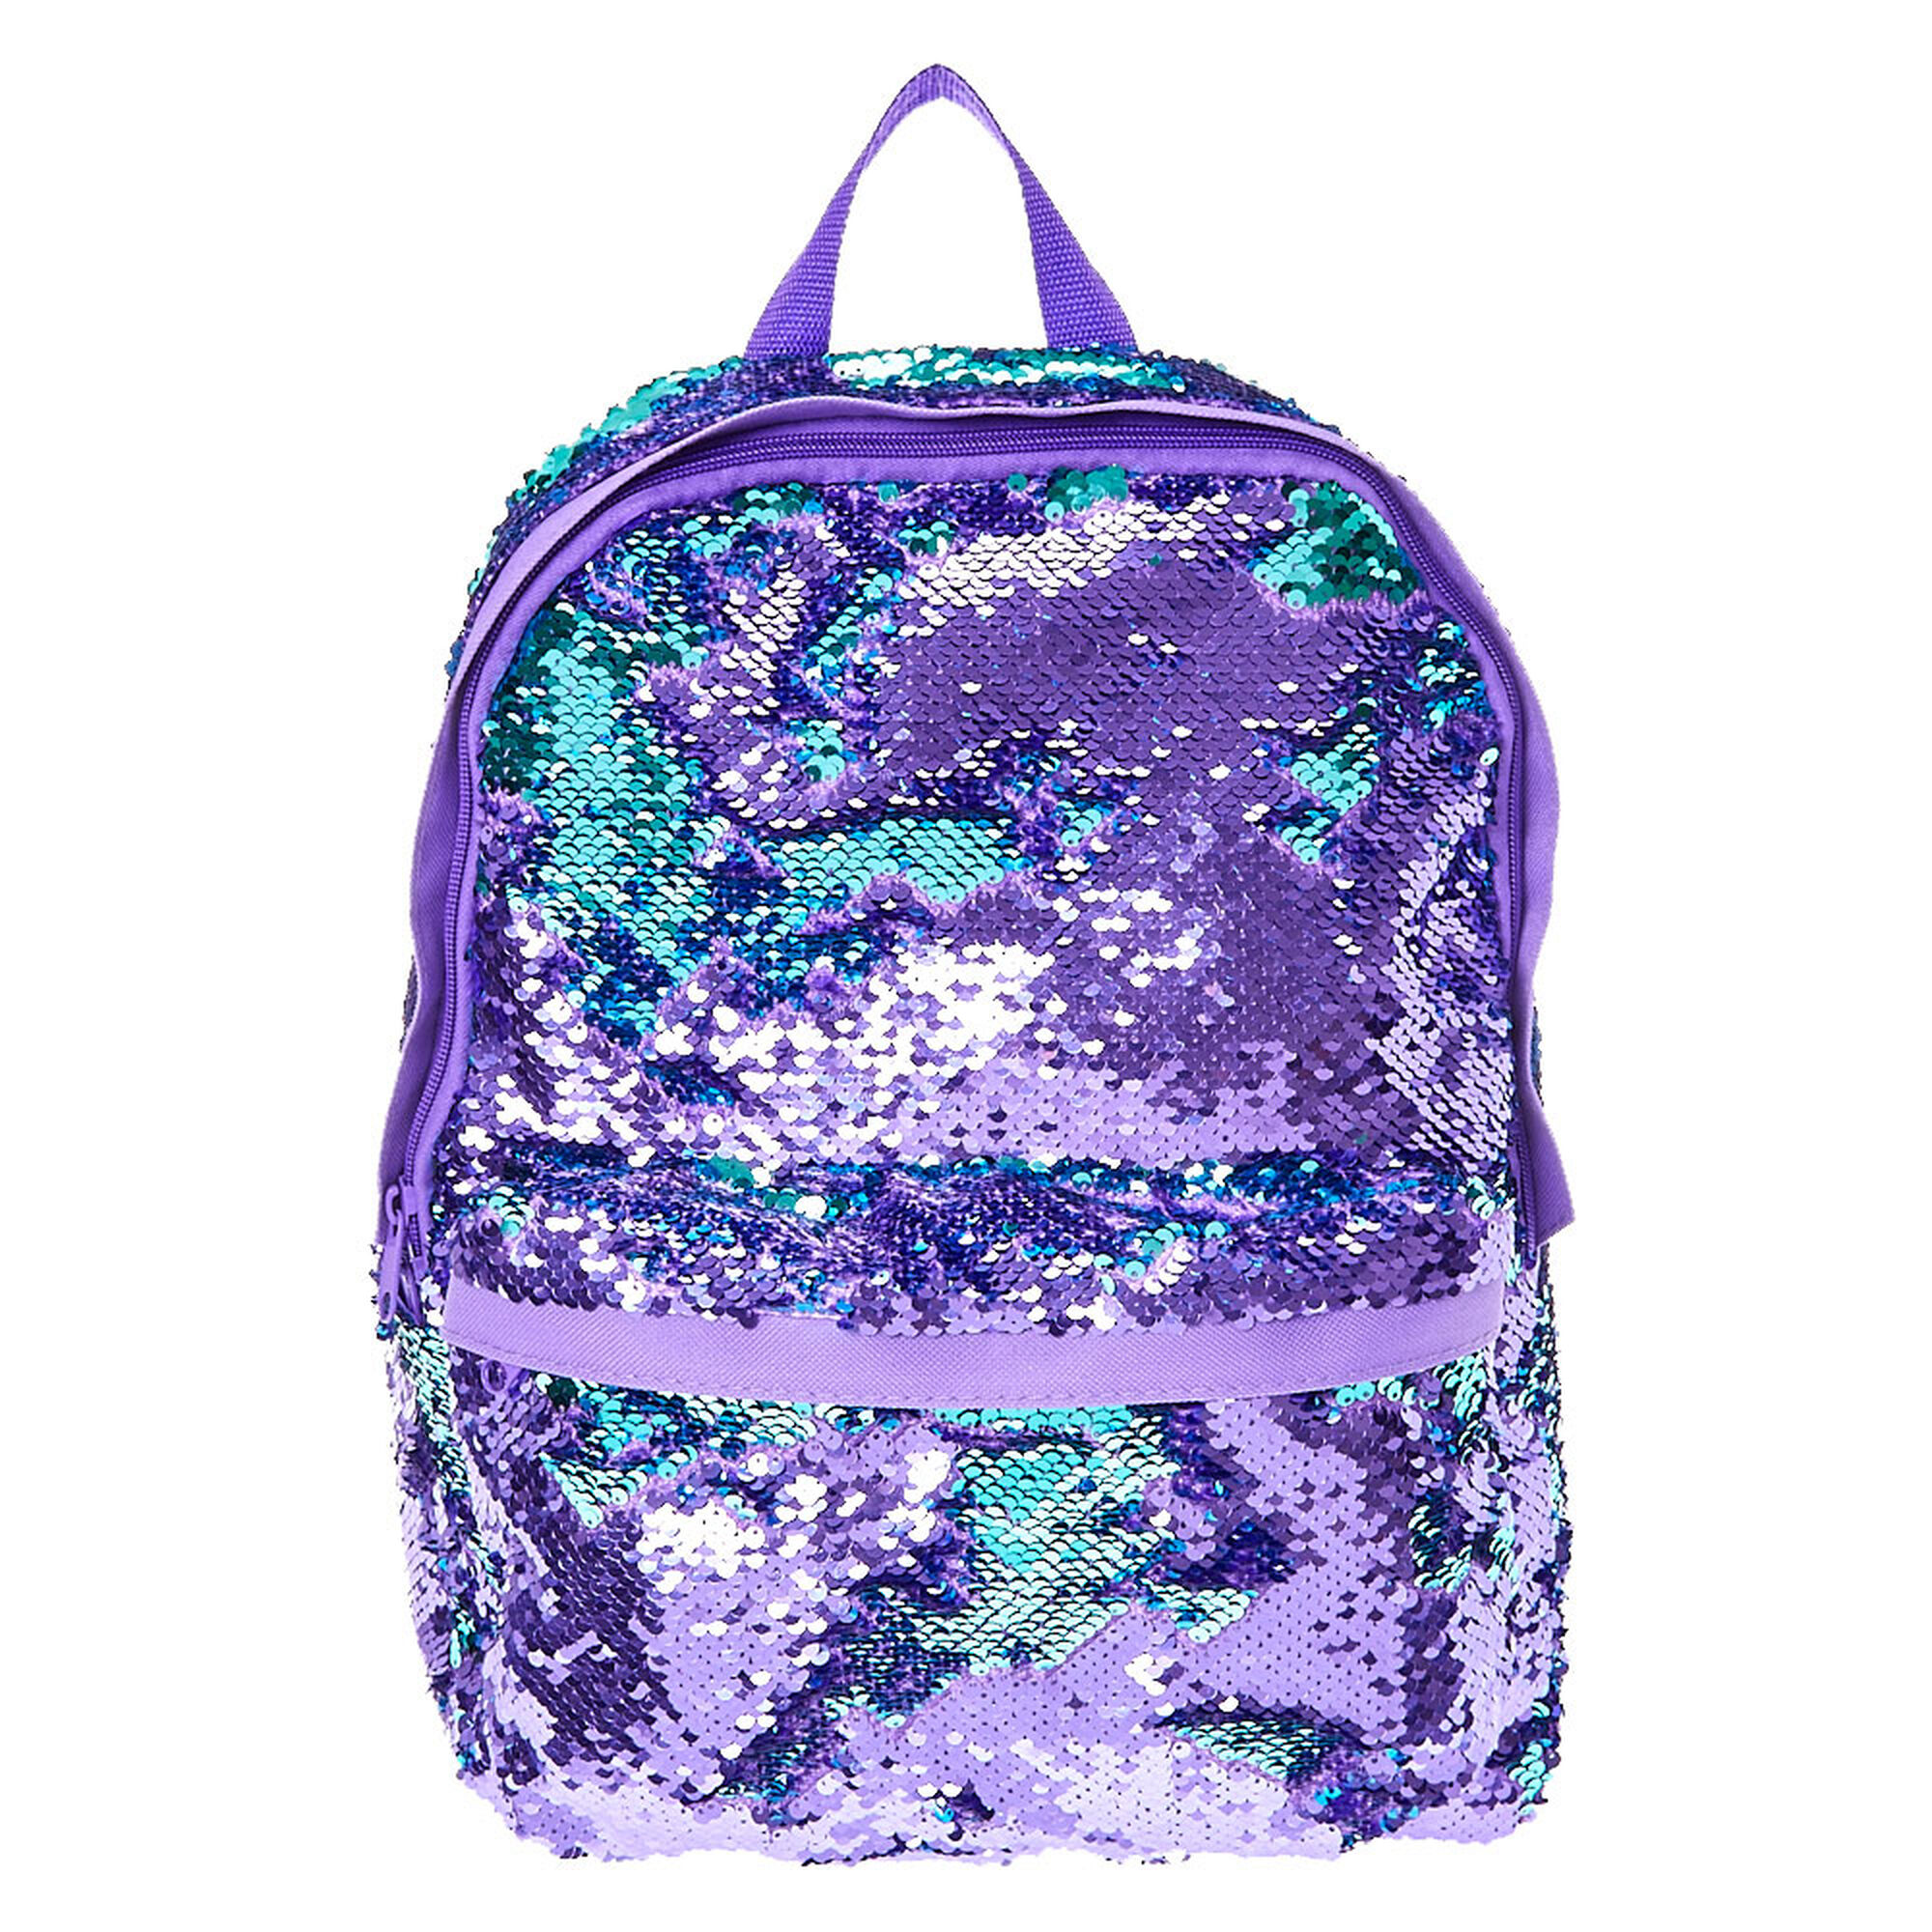 Reversible Purple To Turquoise Sequin Backpack Claire S Ca